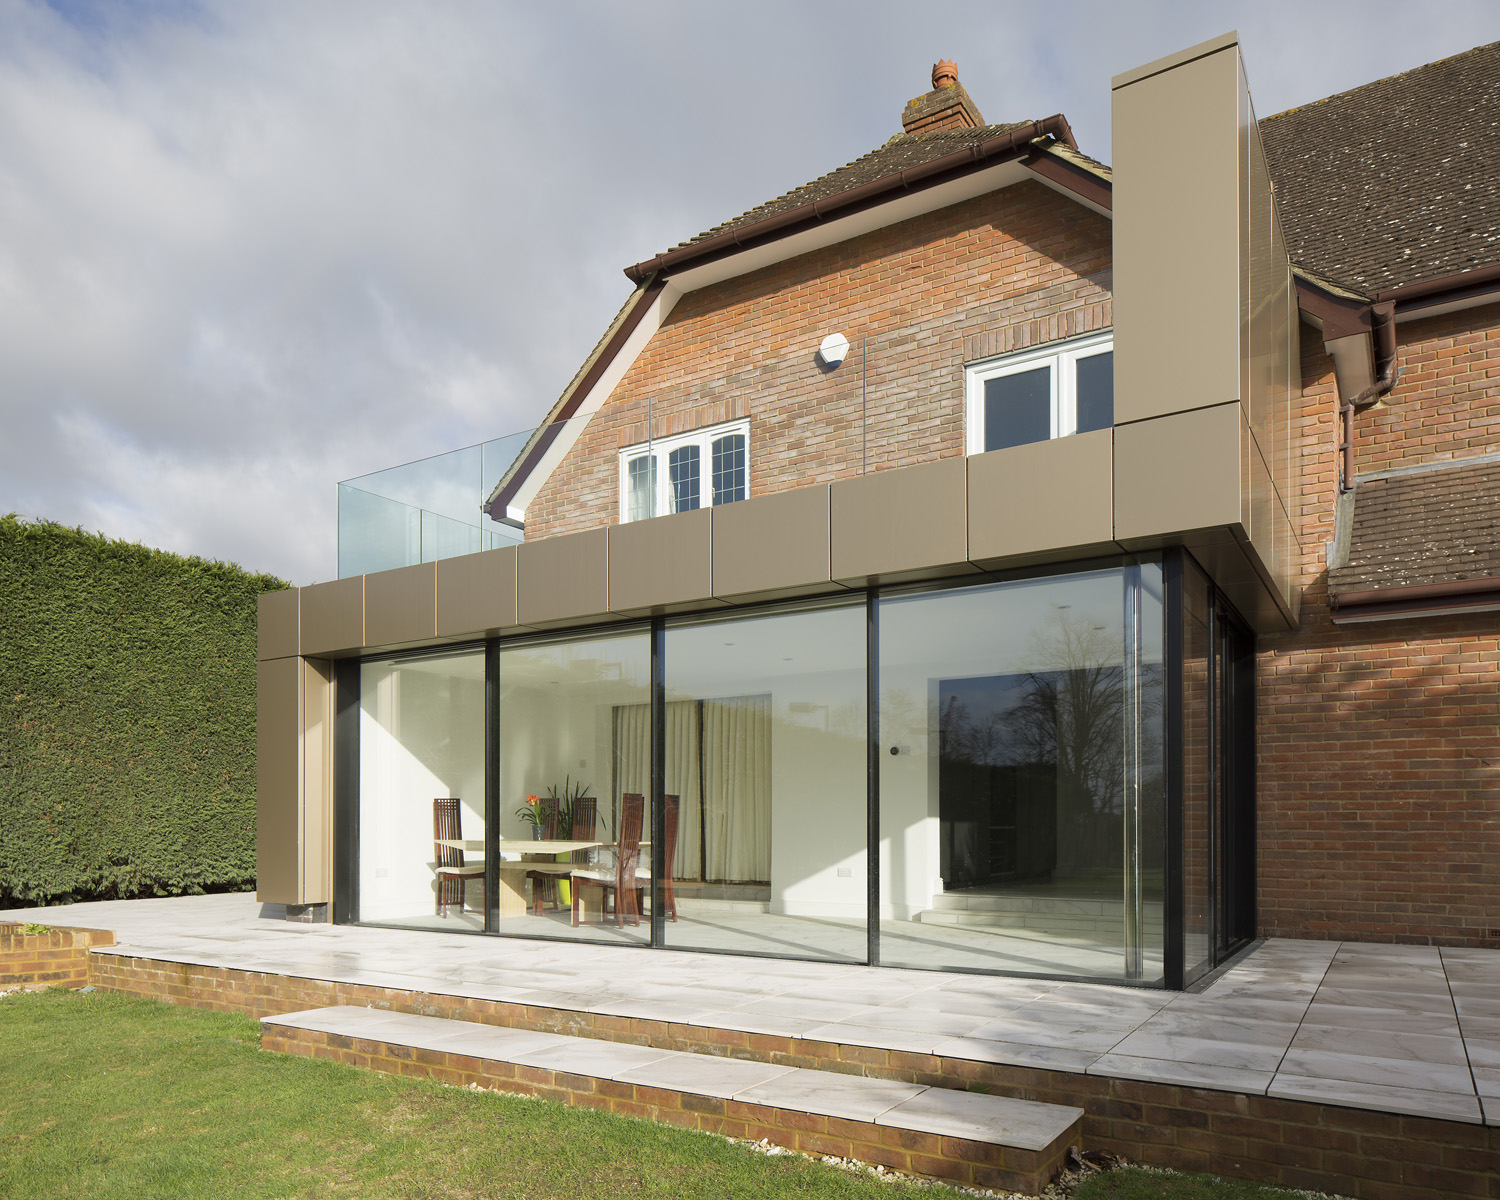 </p> <p>Find your ideal home design pro on designfor-me.com - get matched and see who's interested in your home project. Click image to see more inspiration from our design pros</p> <p>Design by Ben, architect from Mole Valley, South East</p> <p>#architecture #homedesign #modernhomes #homeinspiration #extensions #extensiondesign #extensioninspiration #extensionideas #houseextension #slidingdoors </p> <p>